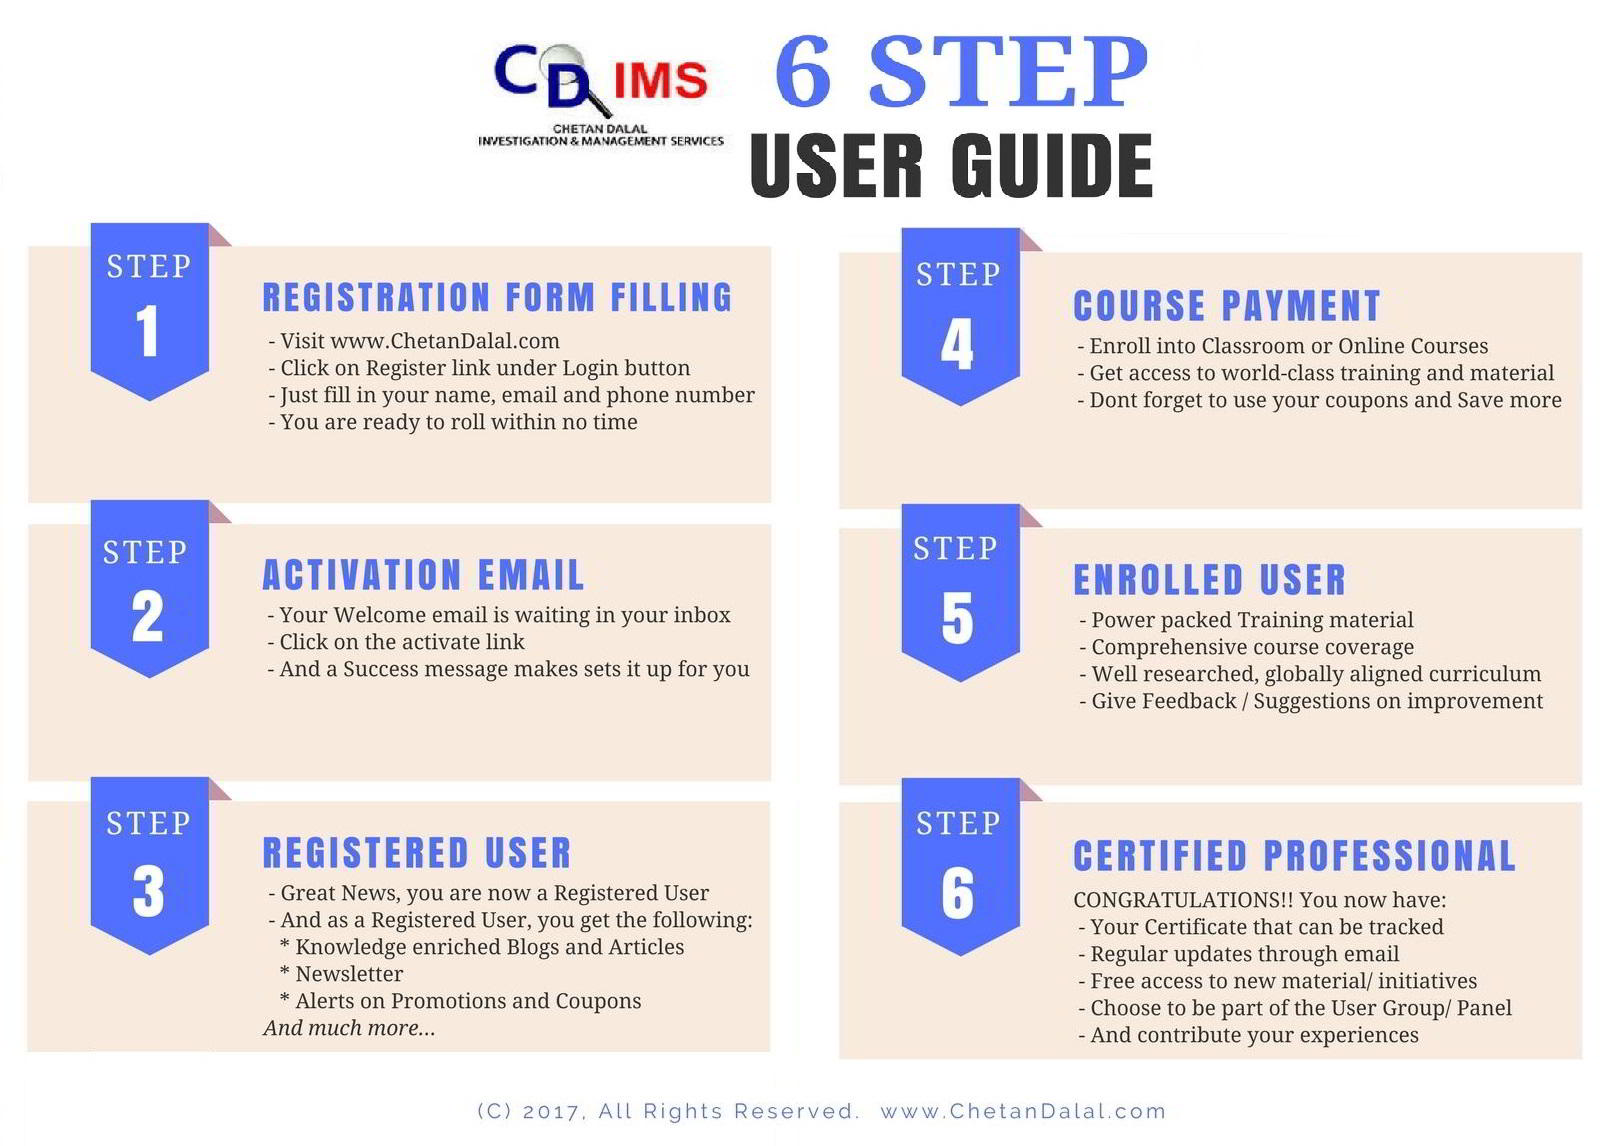 CDIMS User Guide